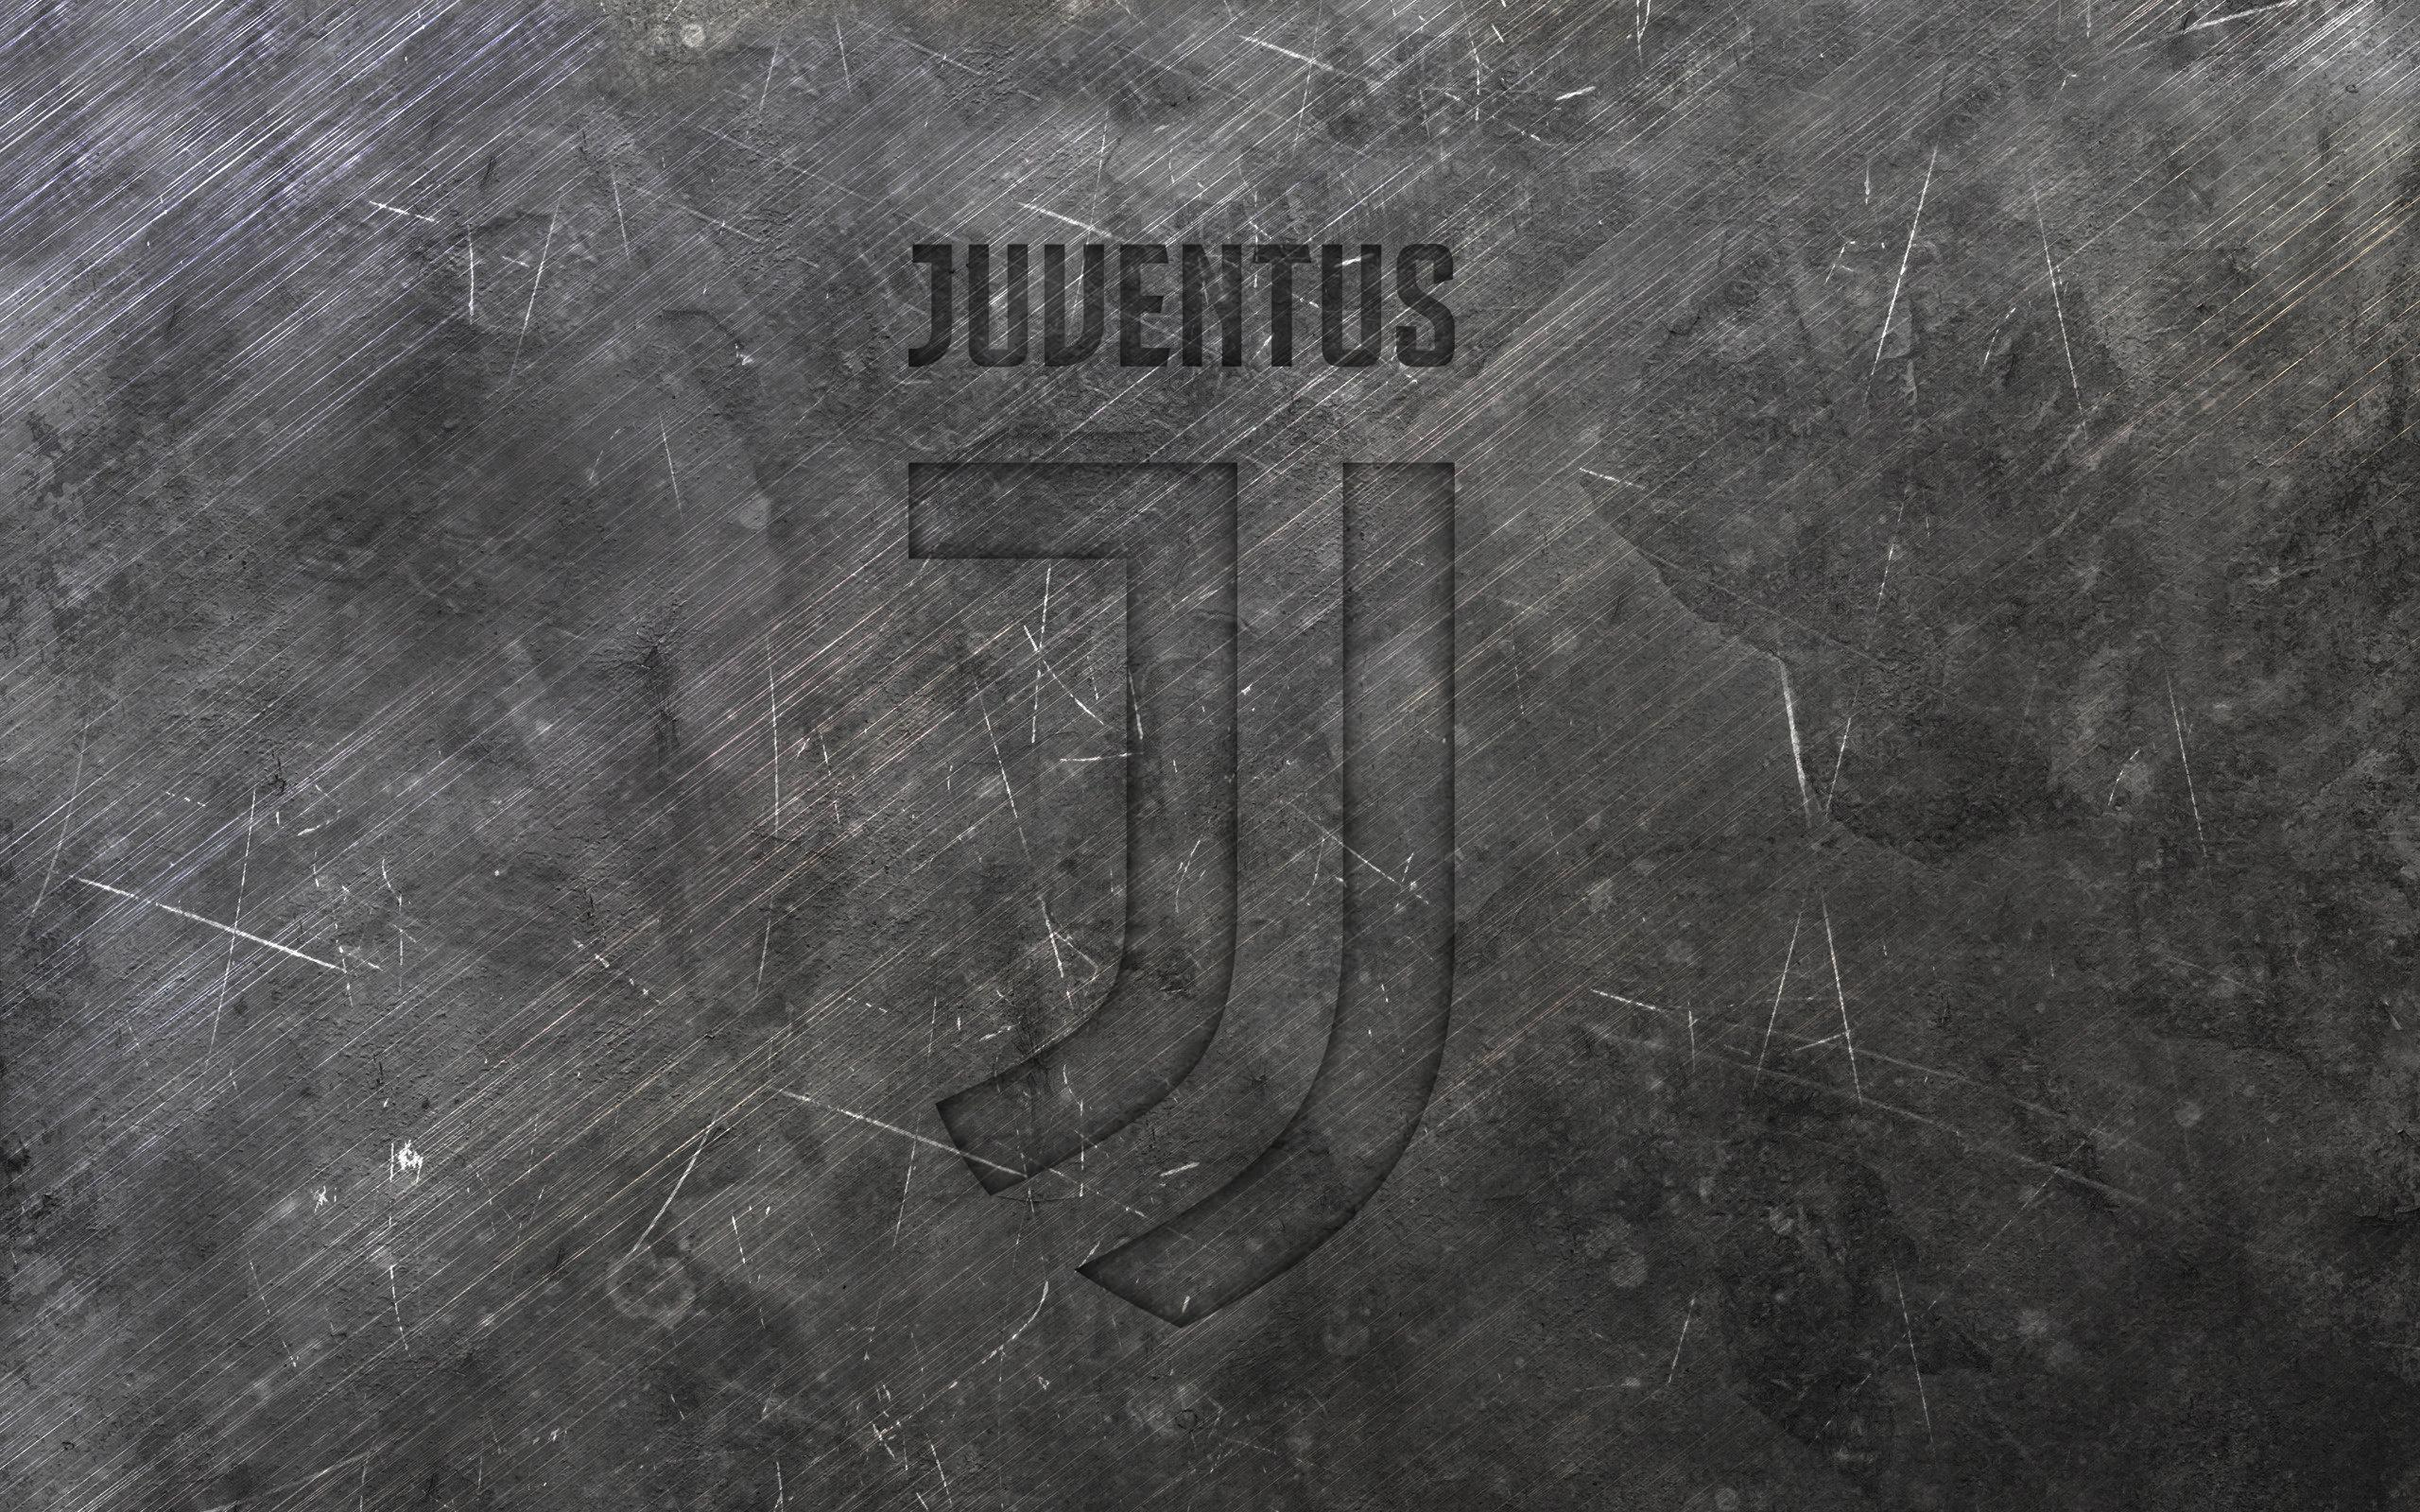 Download wallpapers Juventus, new logo, metal texture, new emblem